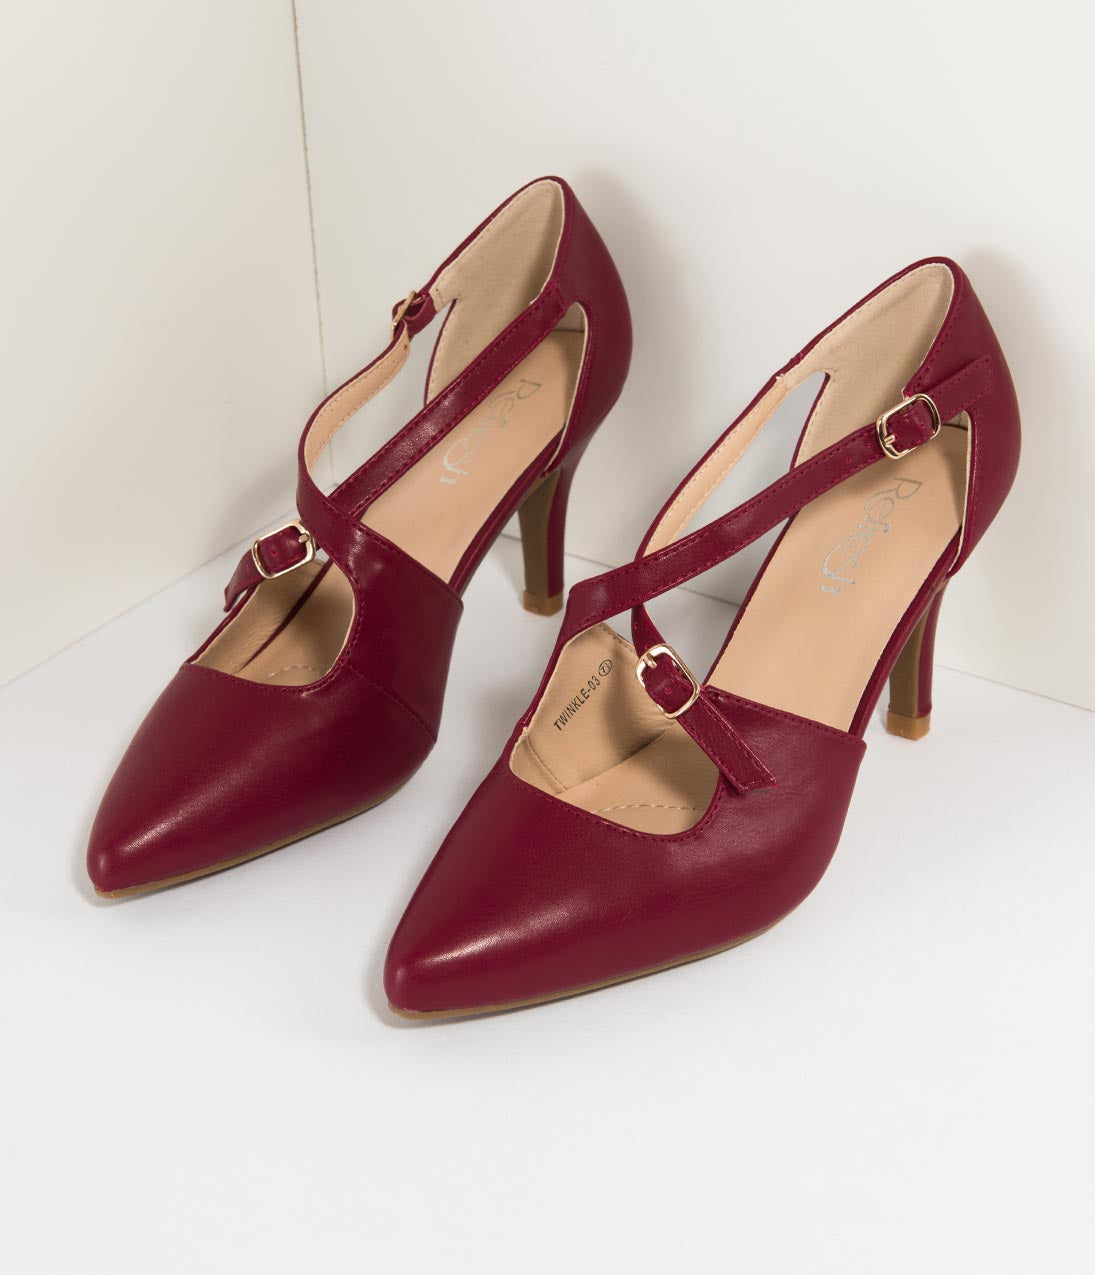 1950s Style Shoes | Heels, Flats, Saddle Shoes Wine Red Leatherette Cross Strap Pointed Toe Pumps $35.00 AT vintagedancer.com